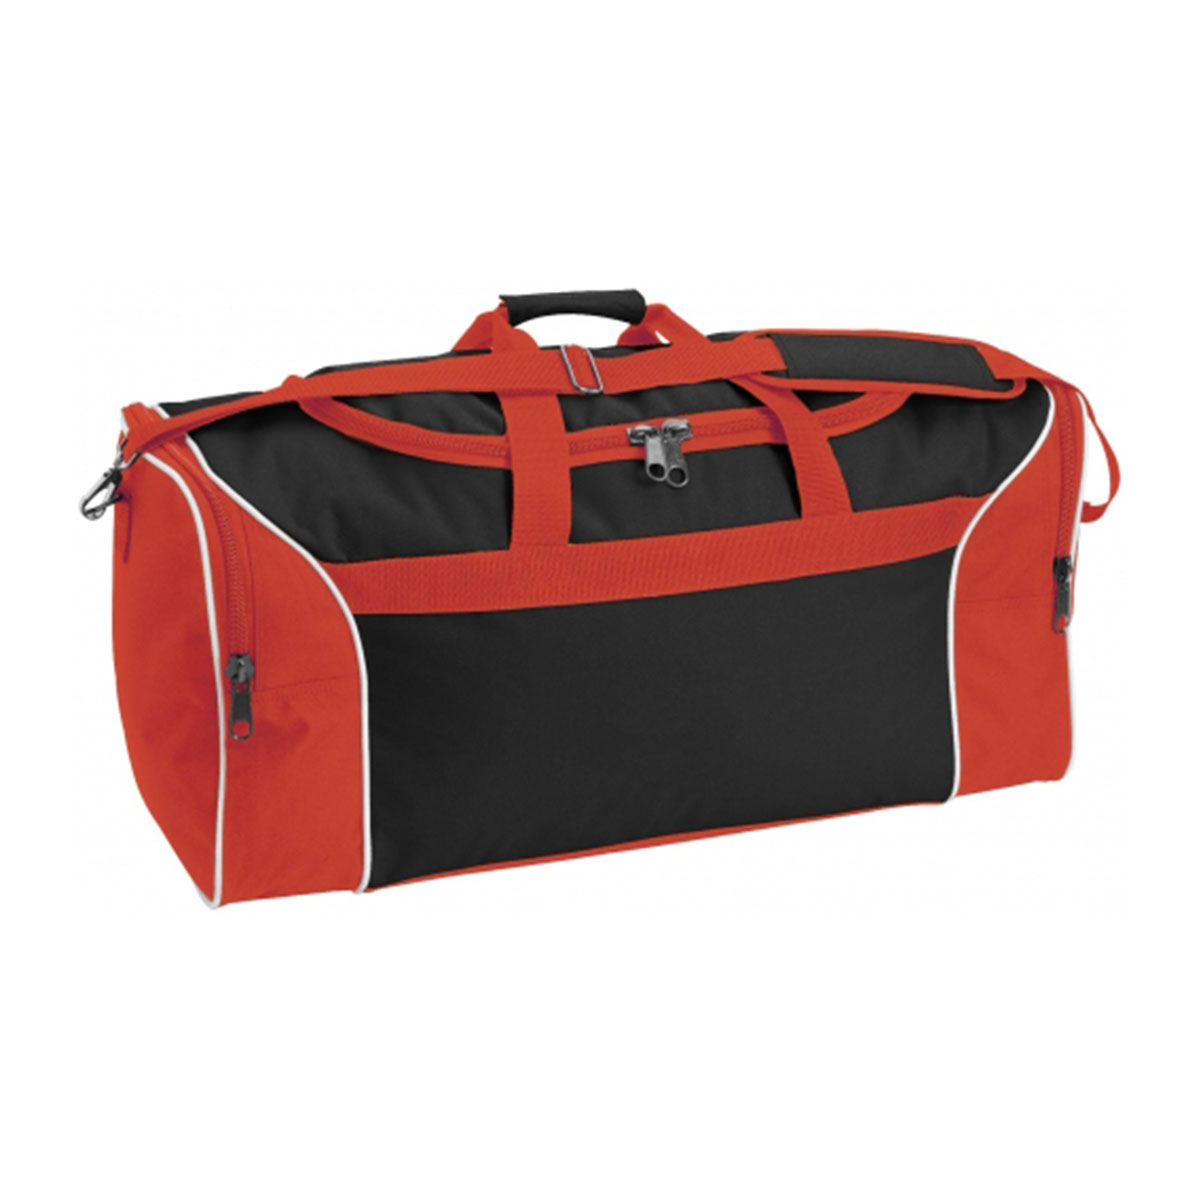 Tri-Colour Sports Bag-Black / White / Red